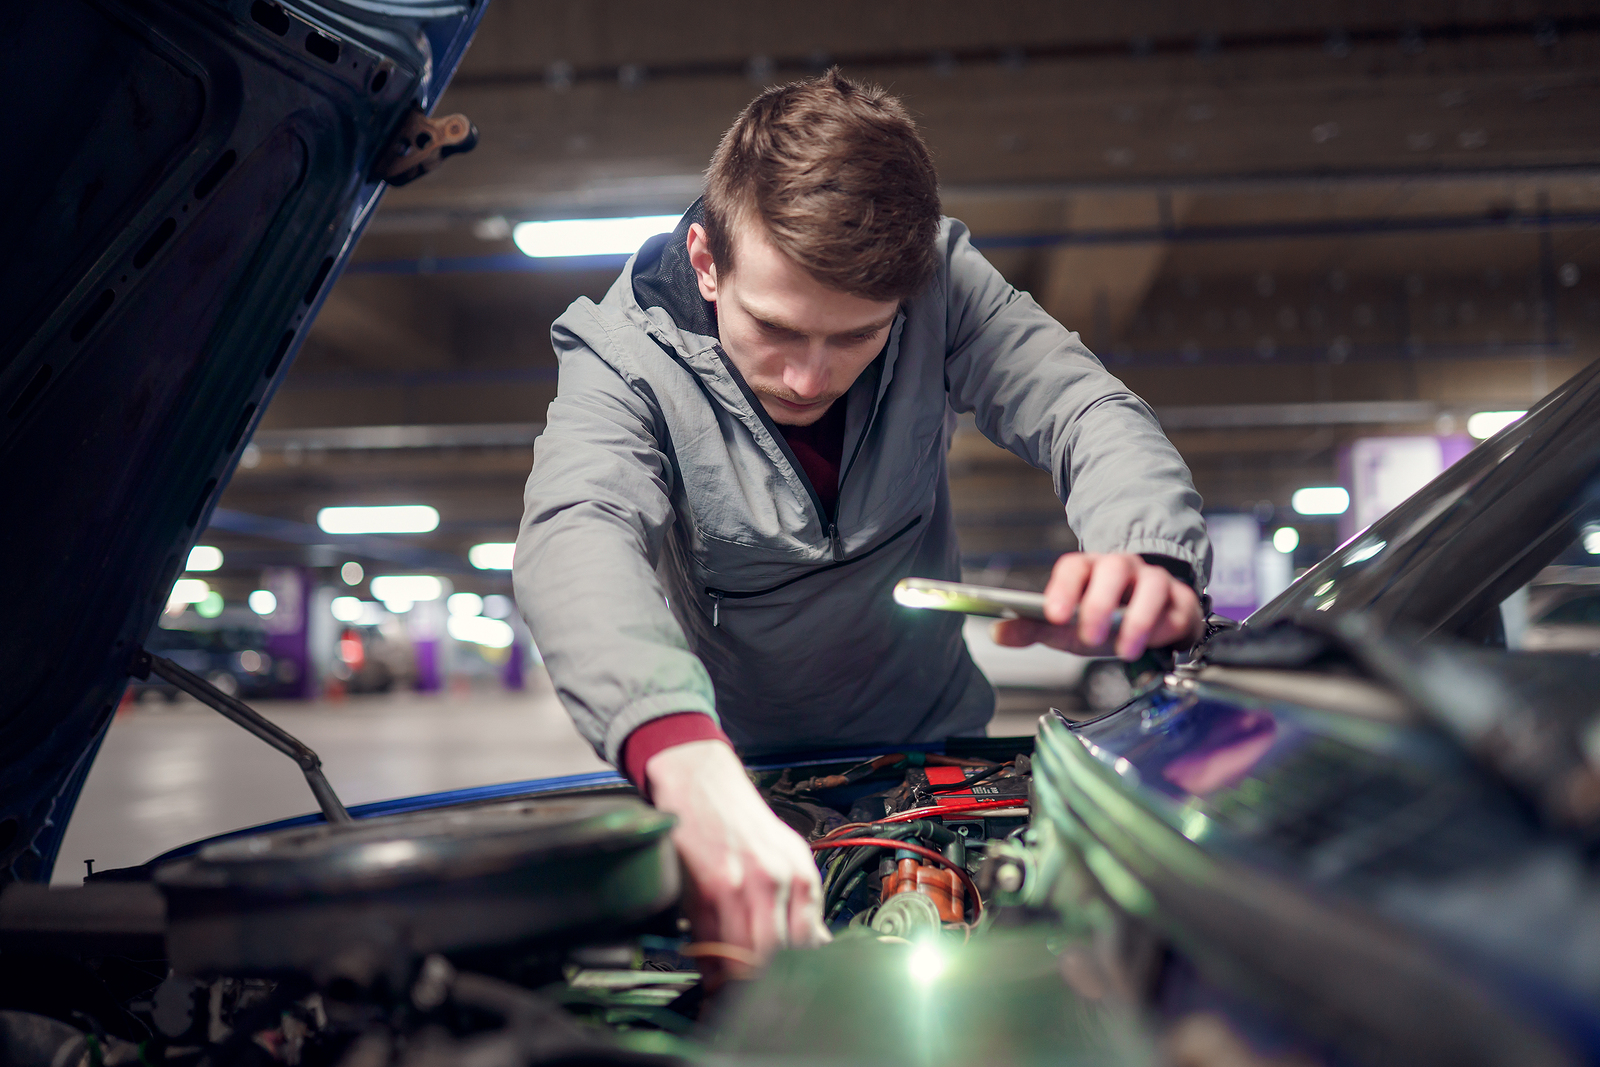 A young man watches a walkthrough video from a dealership while fixing his car.